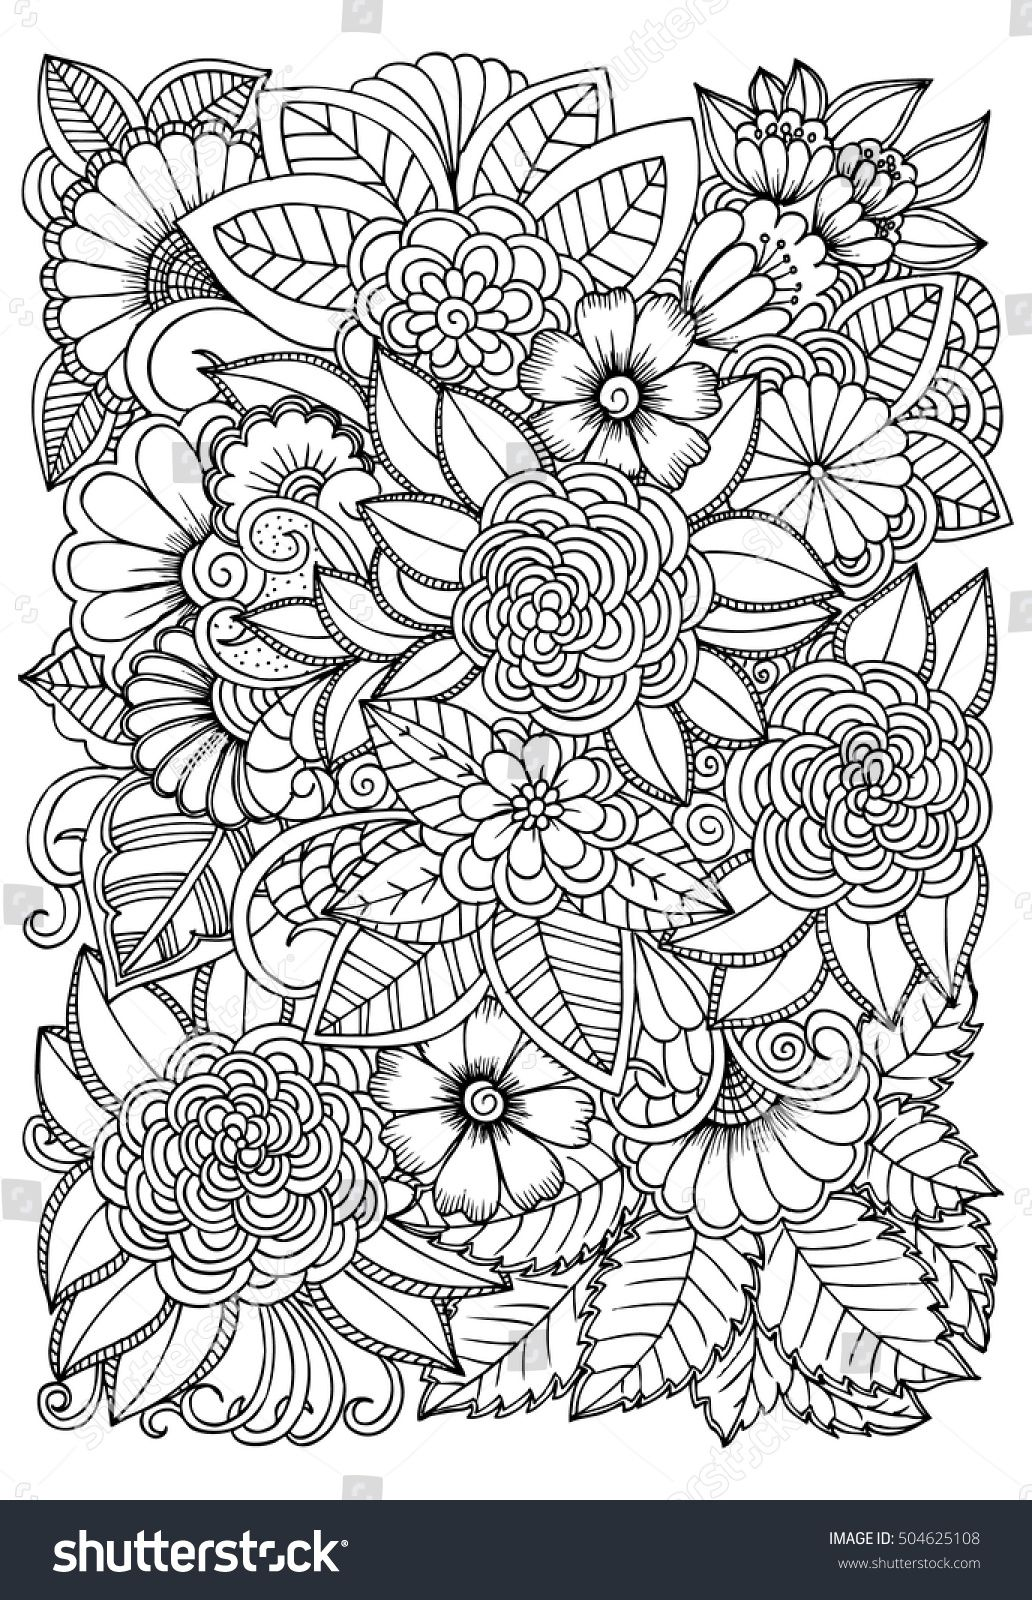 Black And White Flower Pattern For Coloring Doodle Floral Drawing Art Therapy Coloring Page Rel Flower Pattern Drawing Floral Drawing Pattern Coloring Pages